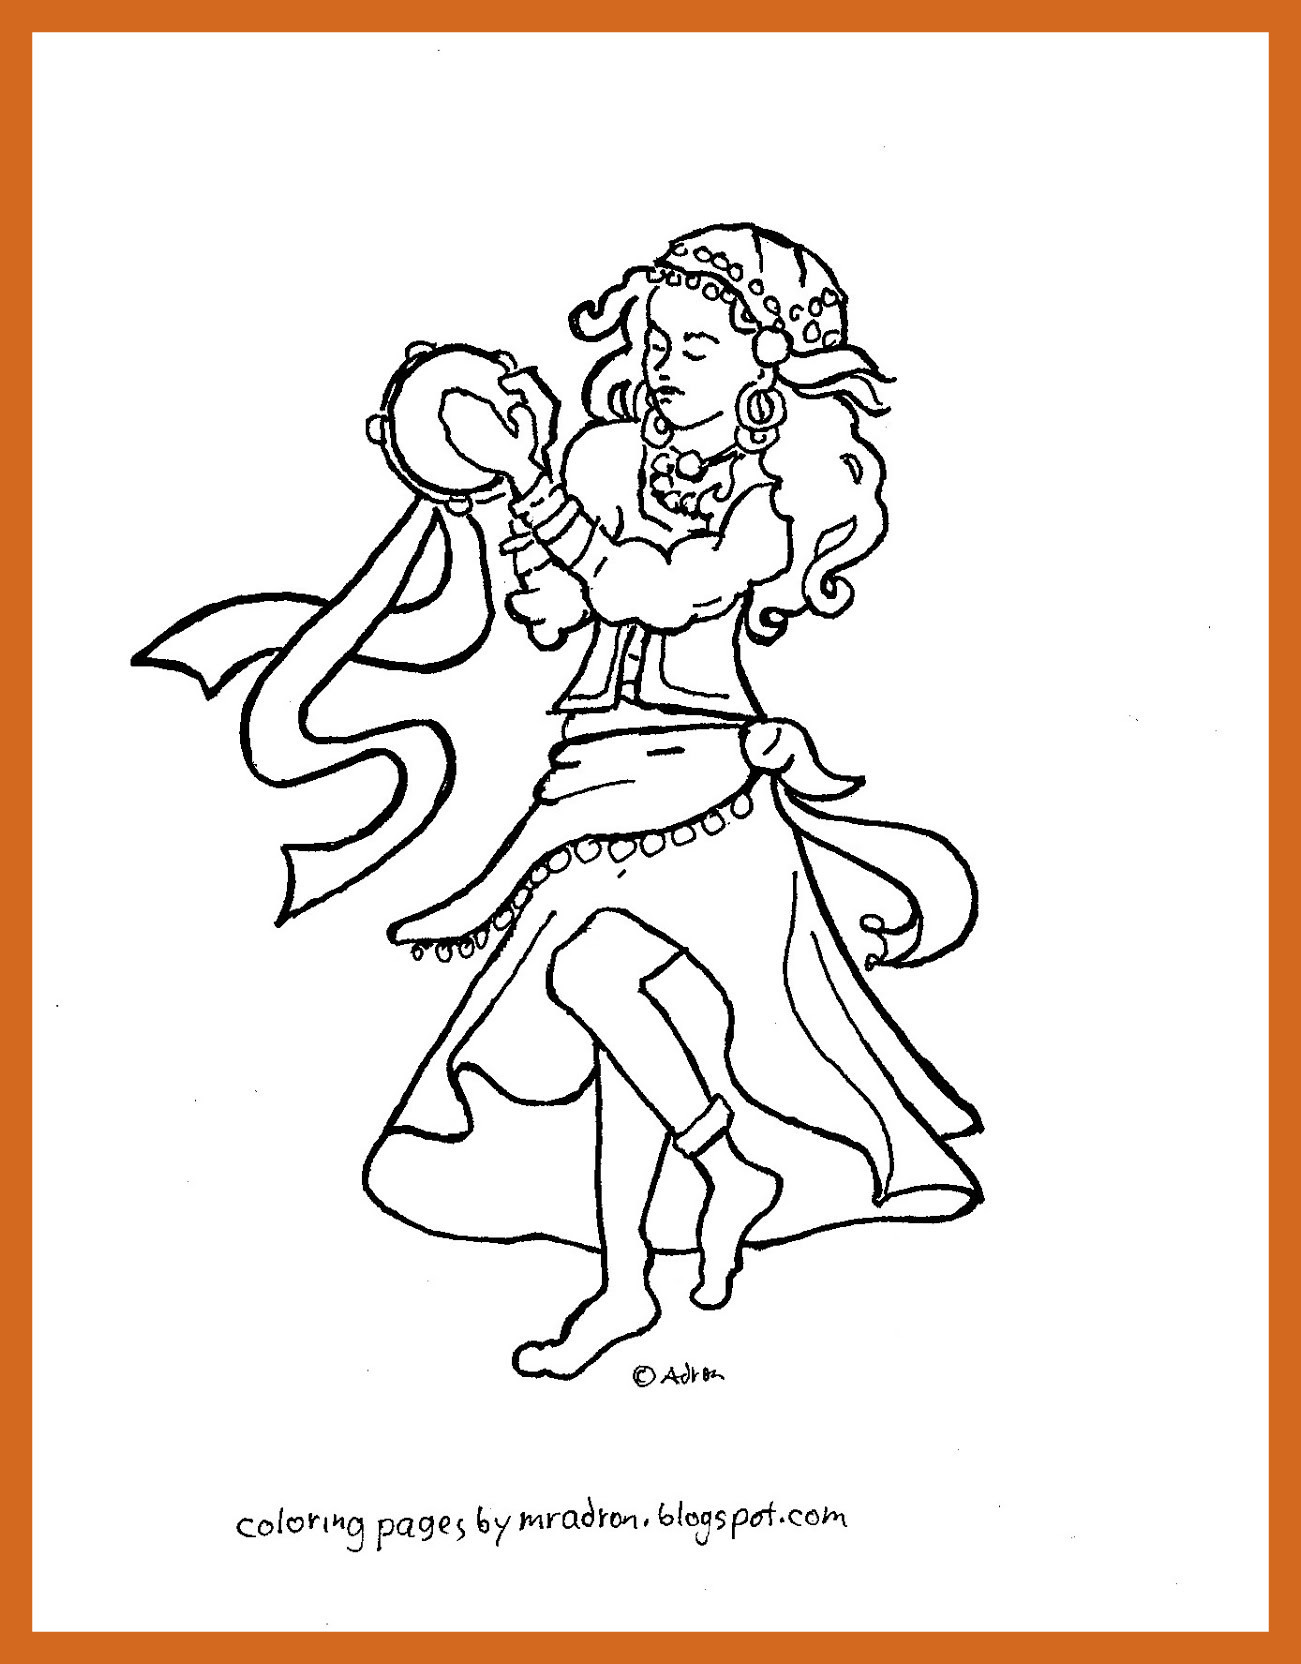 1301x1664 Awesome Gypsy Coloring Pages Gallery For Kids Image Max Trend